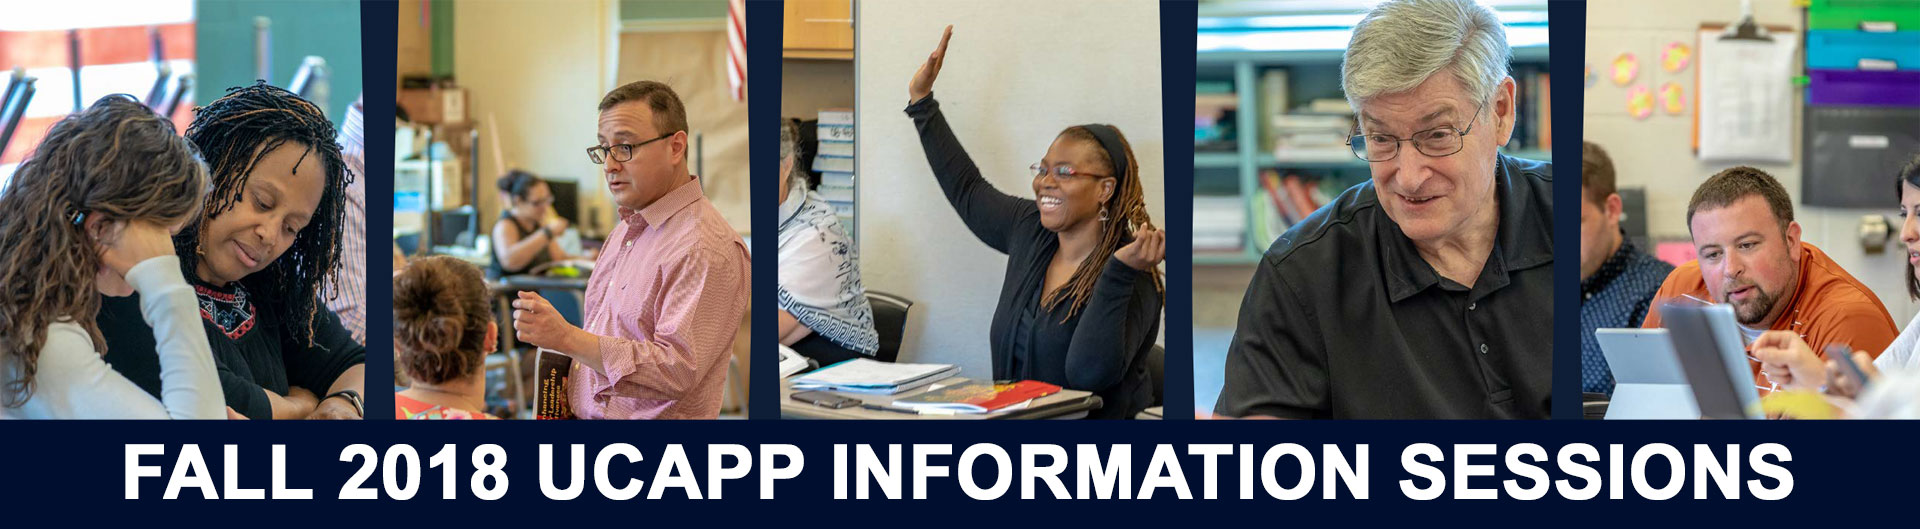 UCAPP Info Sessions, Fall 2018